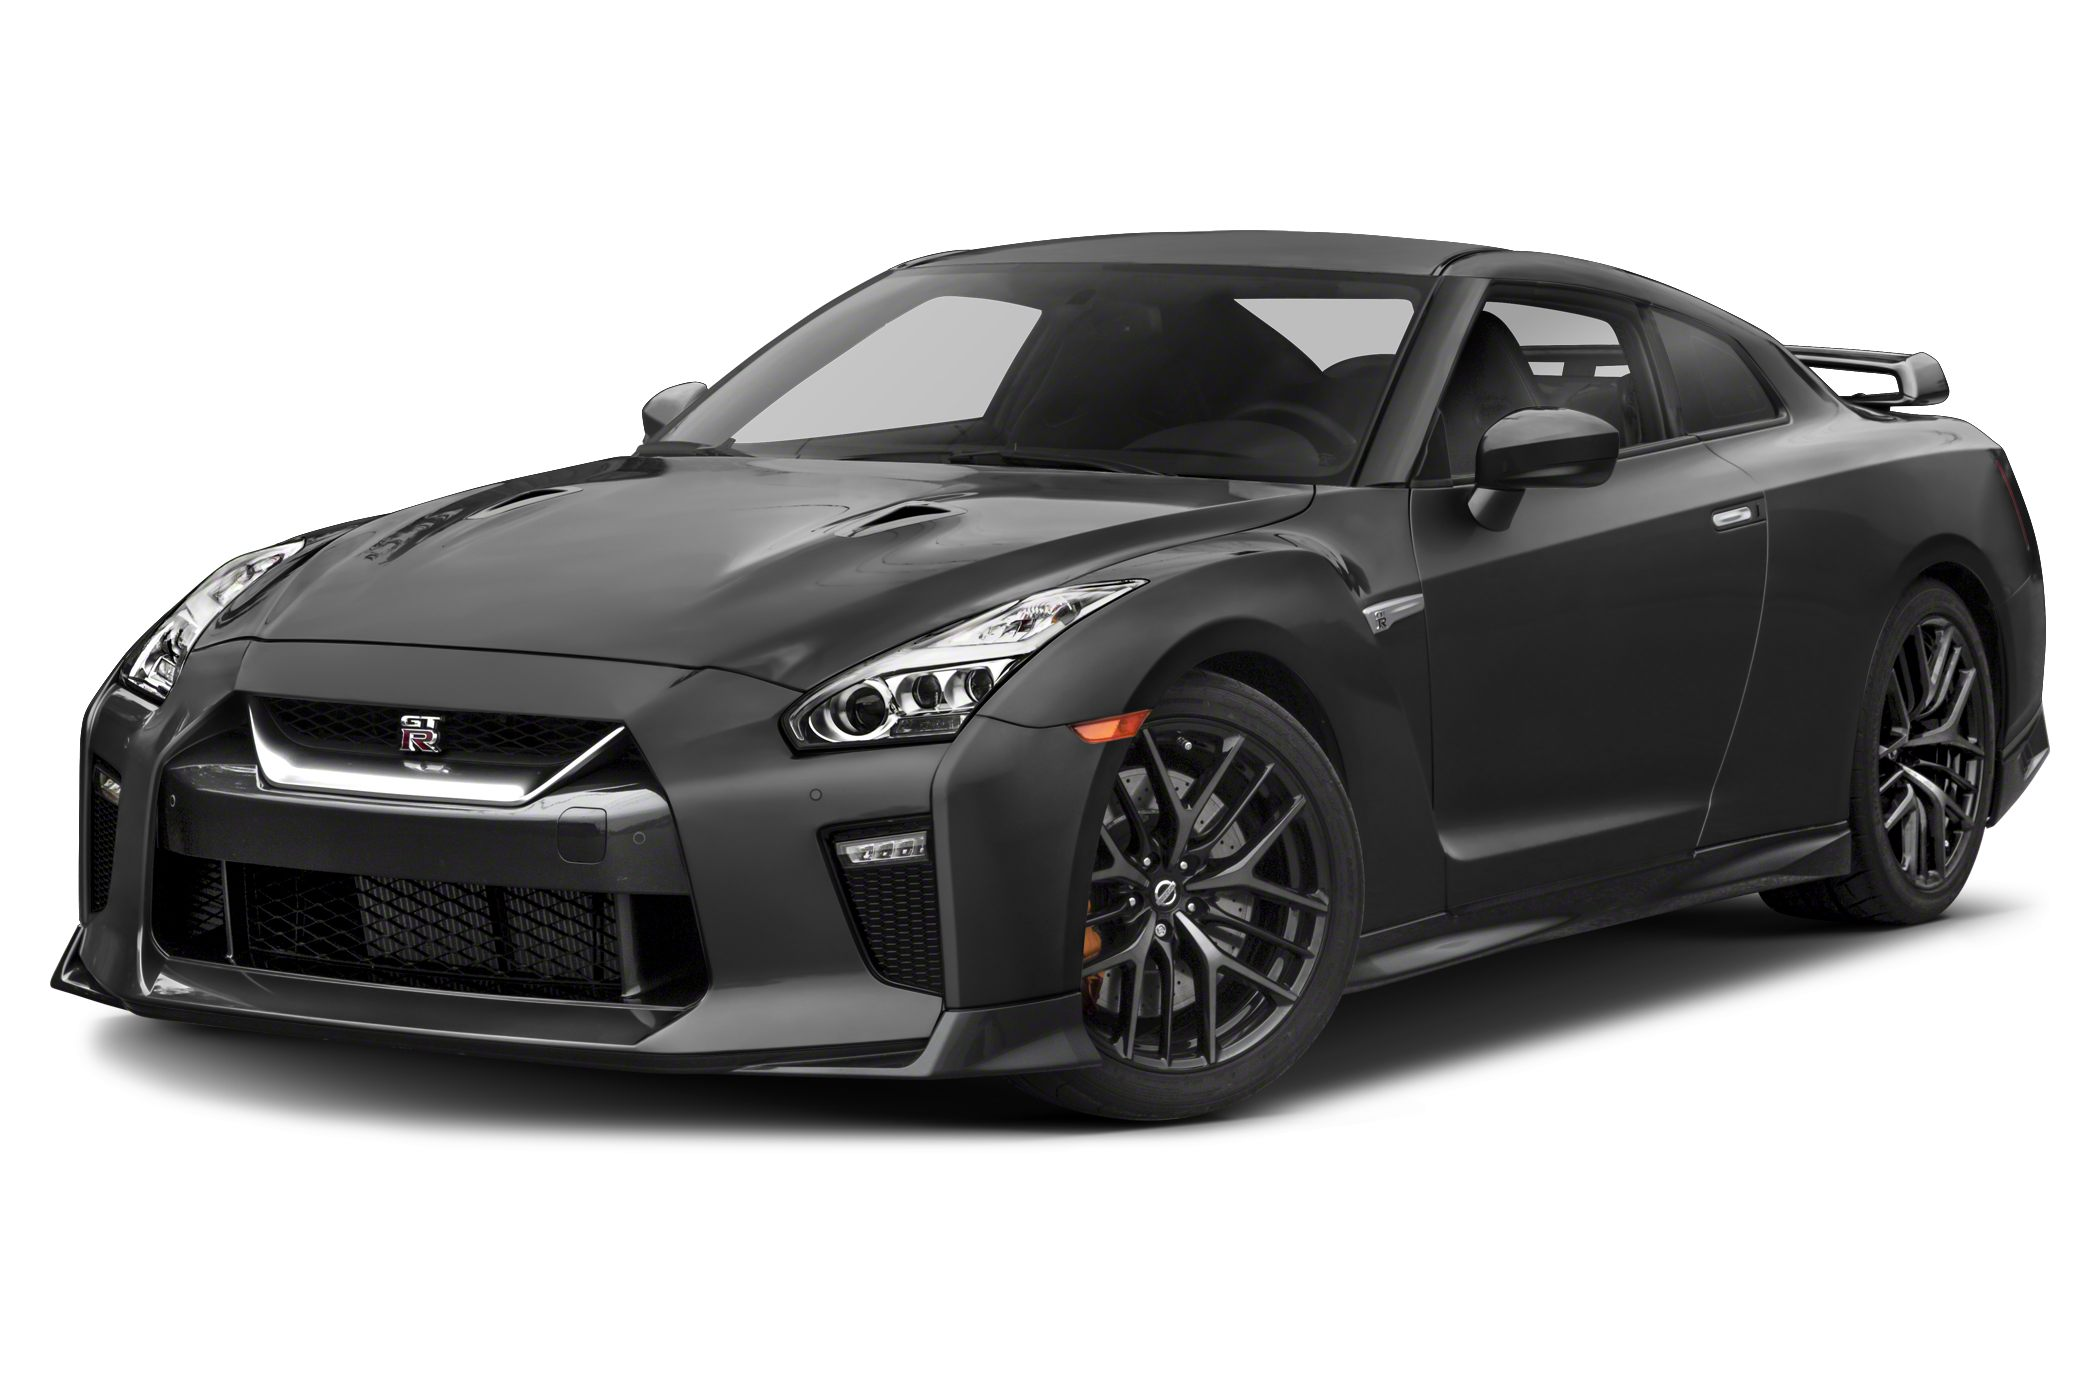 2016 nissan gt r gets 45th anniversary gold edition autoblog. Black Bedroom Furniture Sets. Home Design Ideas